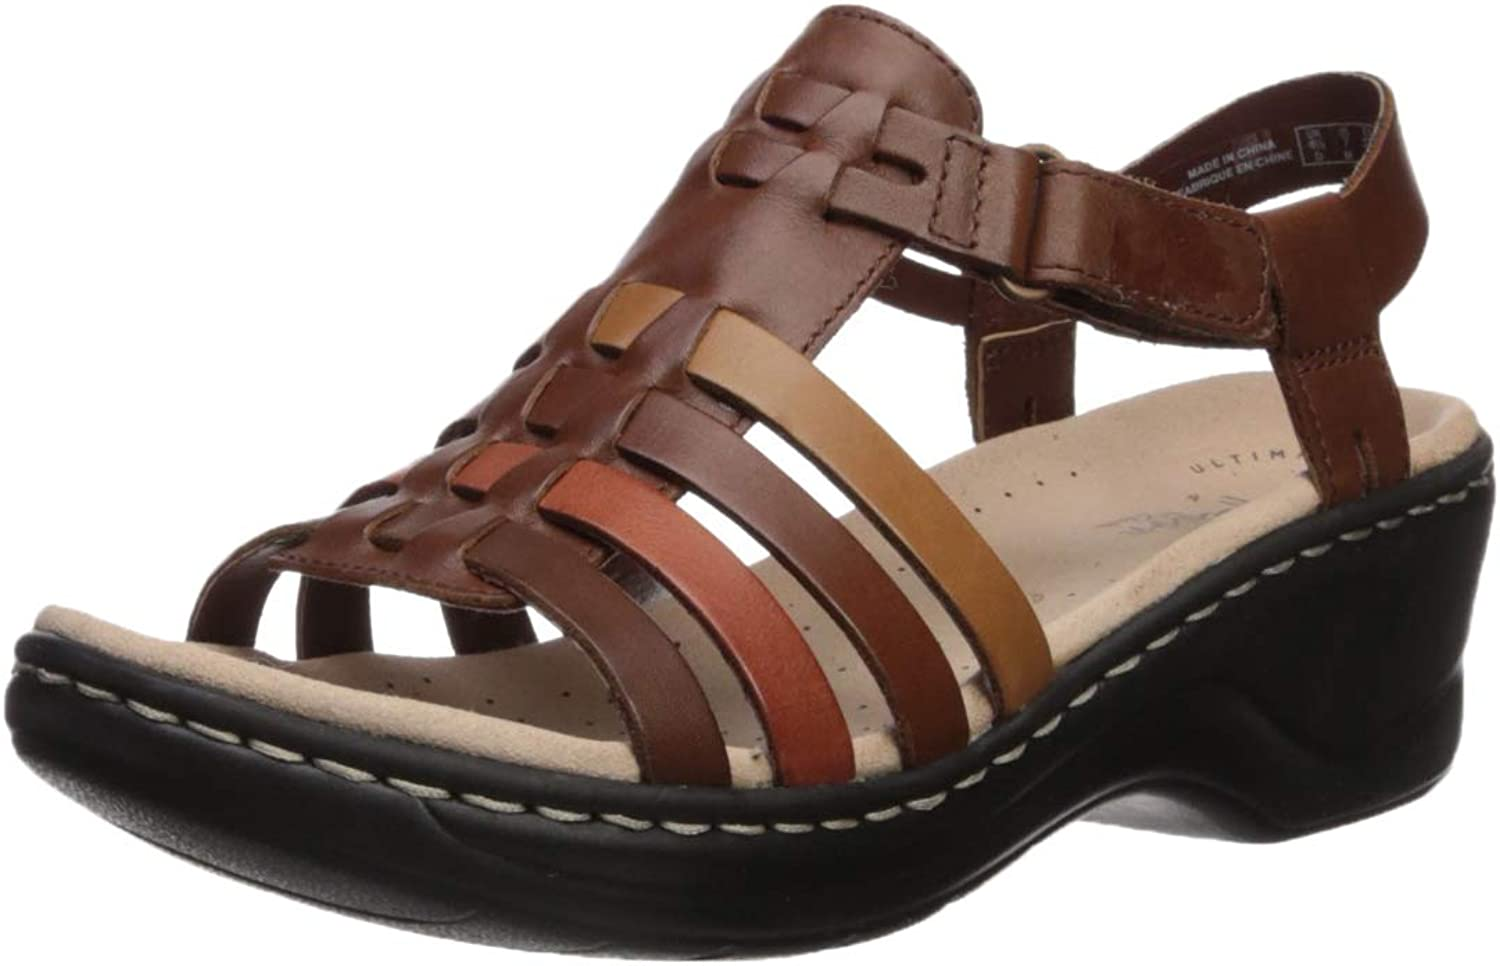 Clarks Womens Lexi Bridge Platform & Wedge Sandals